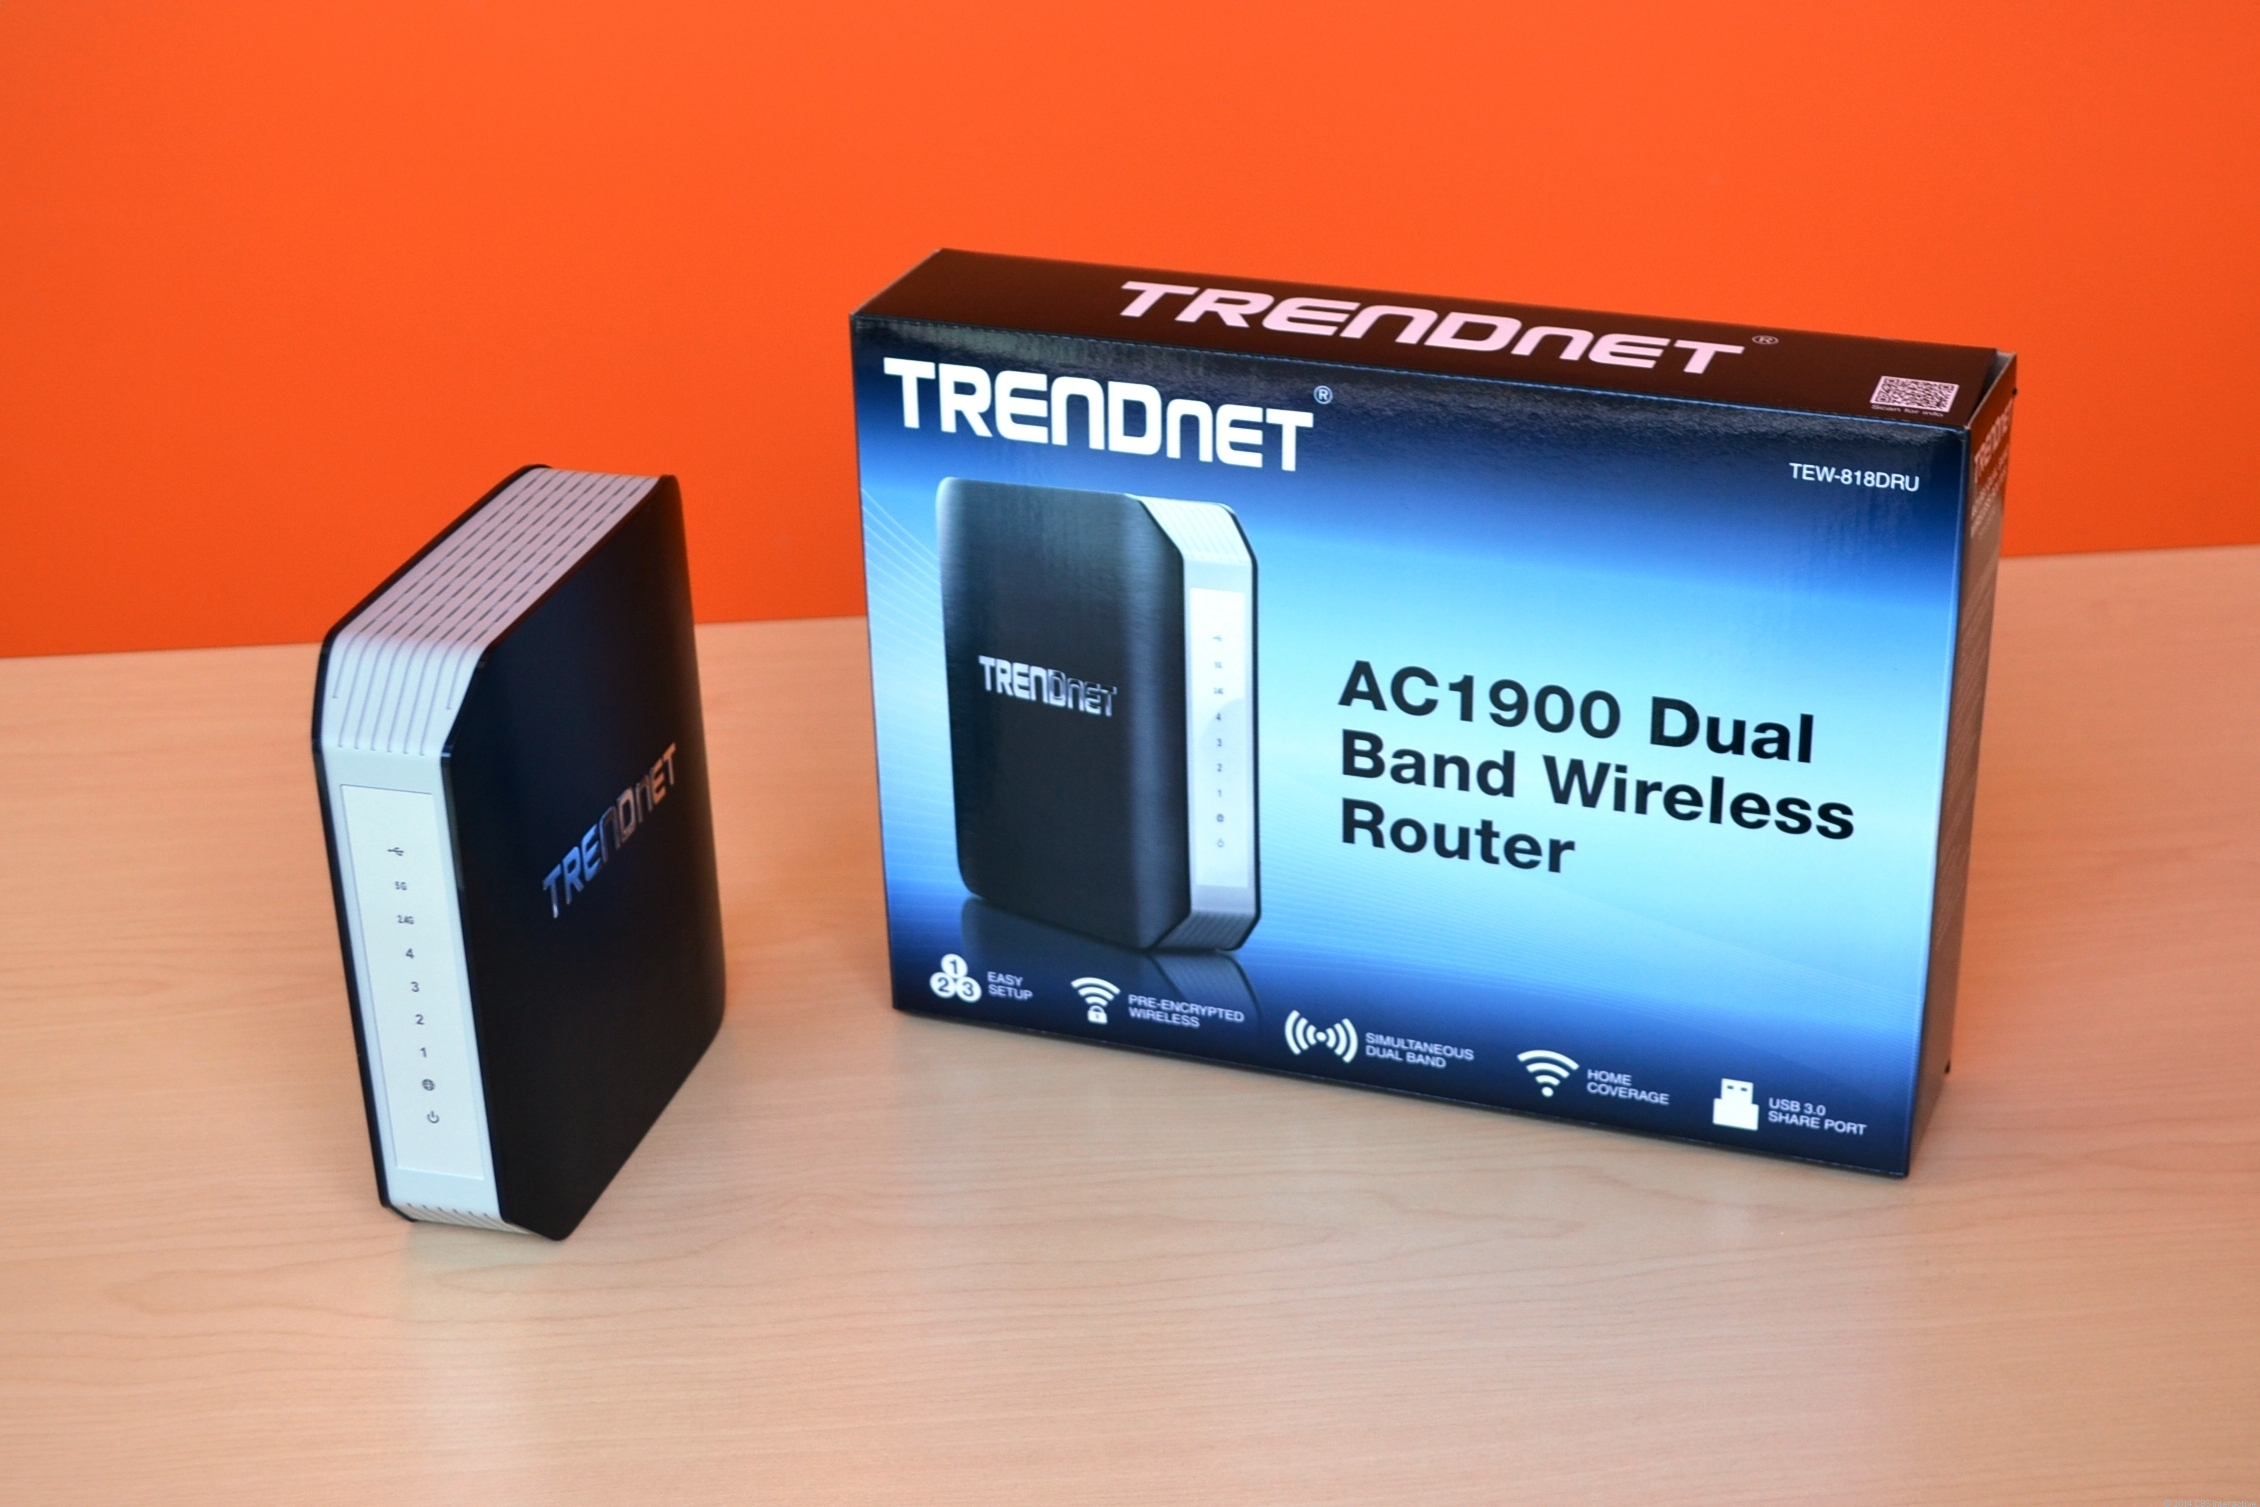 rendnet AC1900 Dual Band Wireless Router